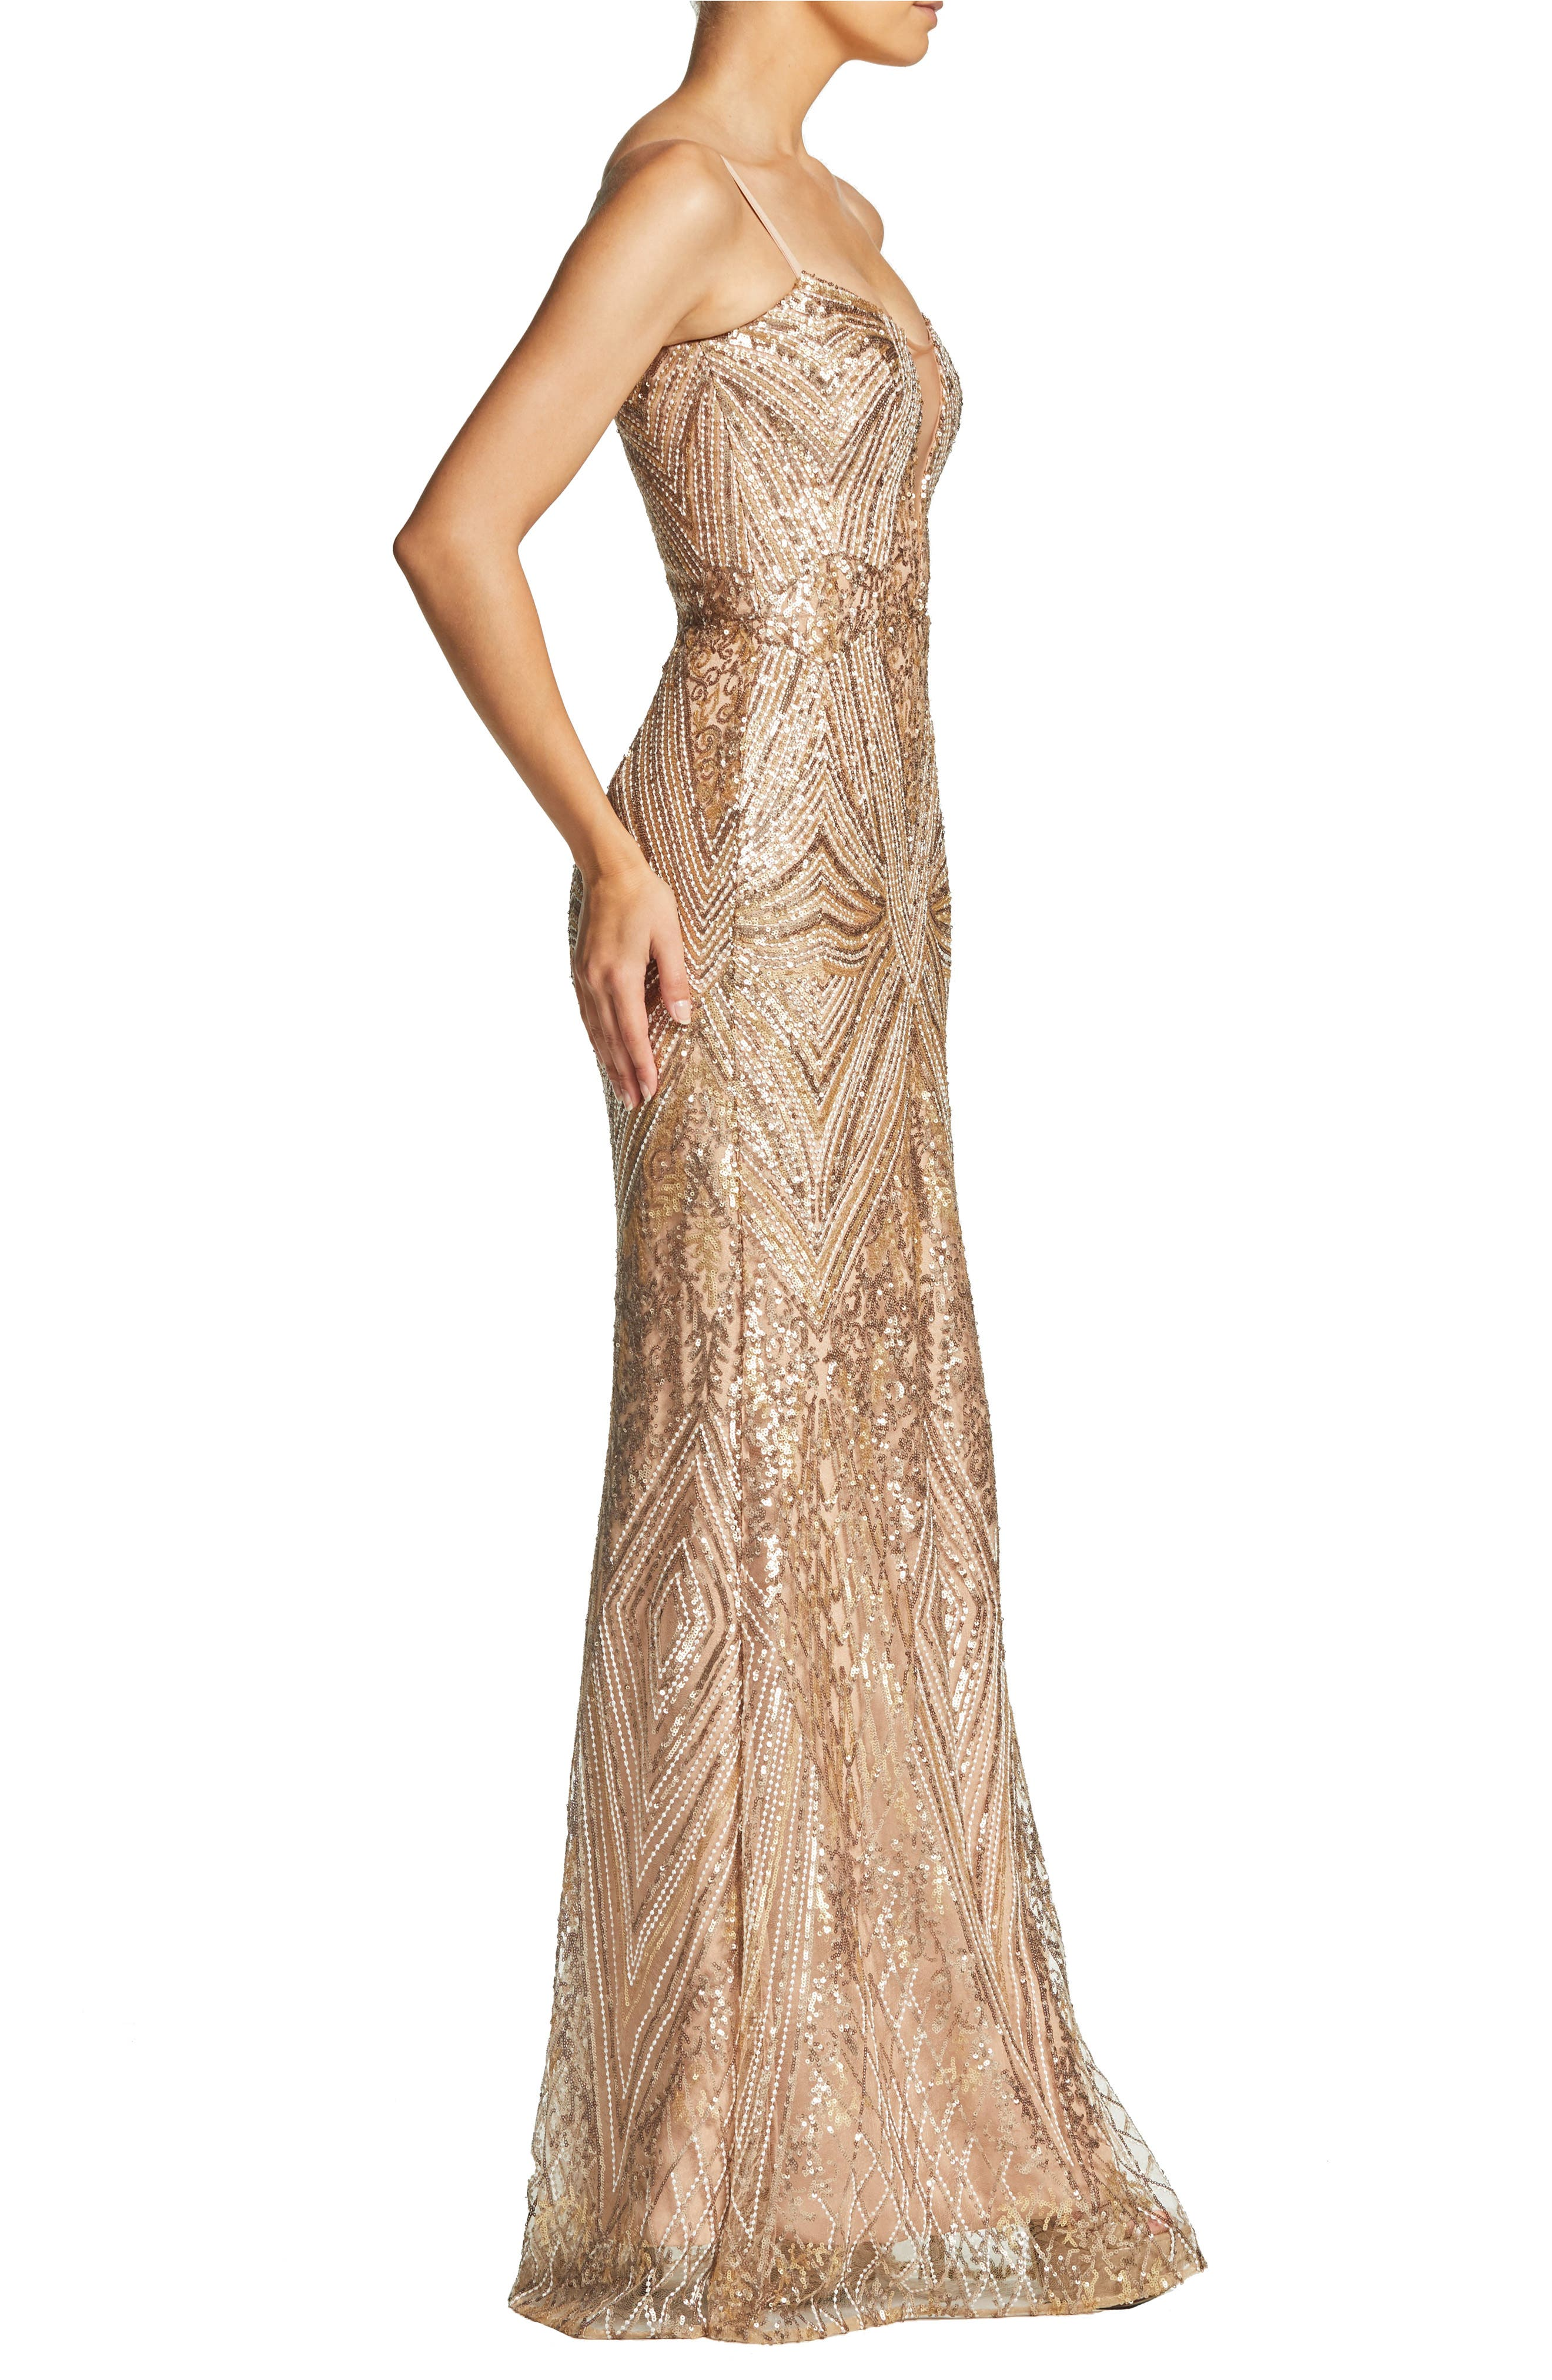 DRESS THE POPULATION, Mara Art Deco Sequin Trumpet Gown, Alternate thumbnail 4, color, GOLD/ BRASS